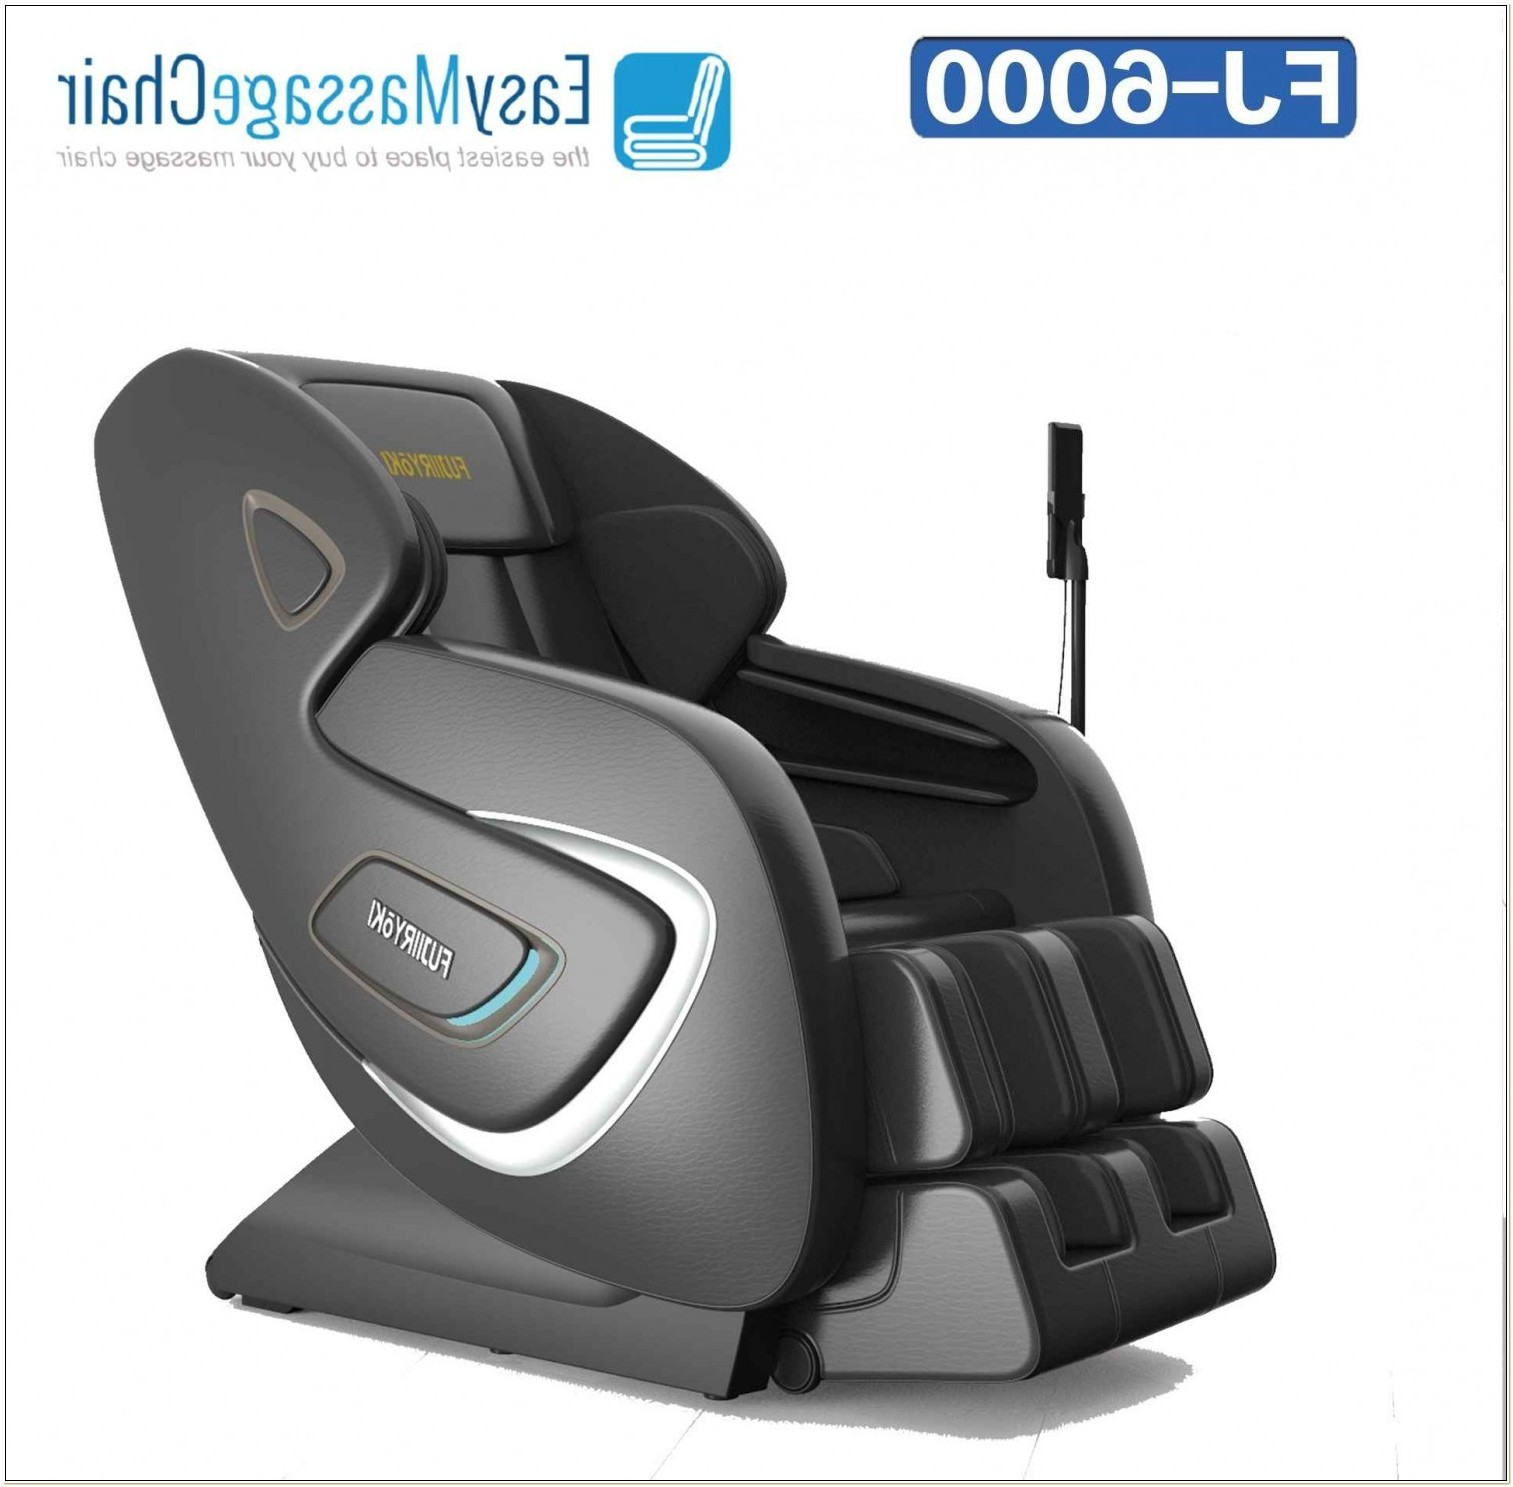 Dr Fuji Cyber Relax Massage Chair